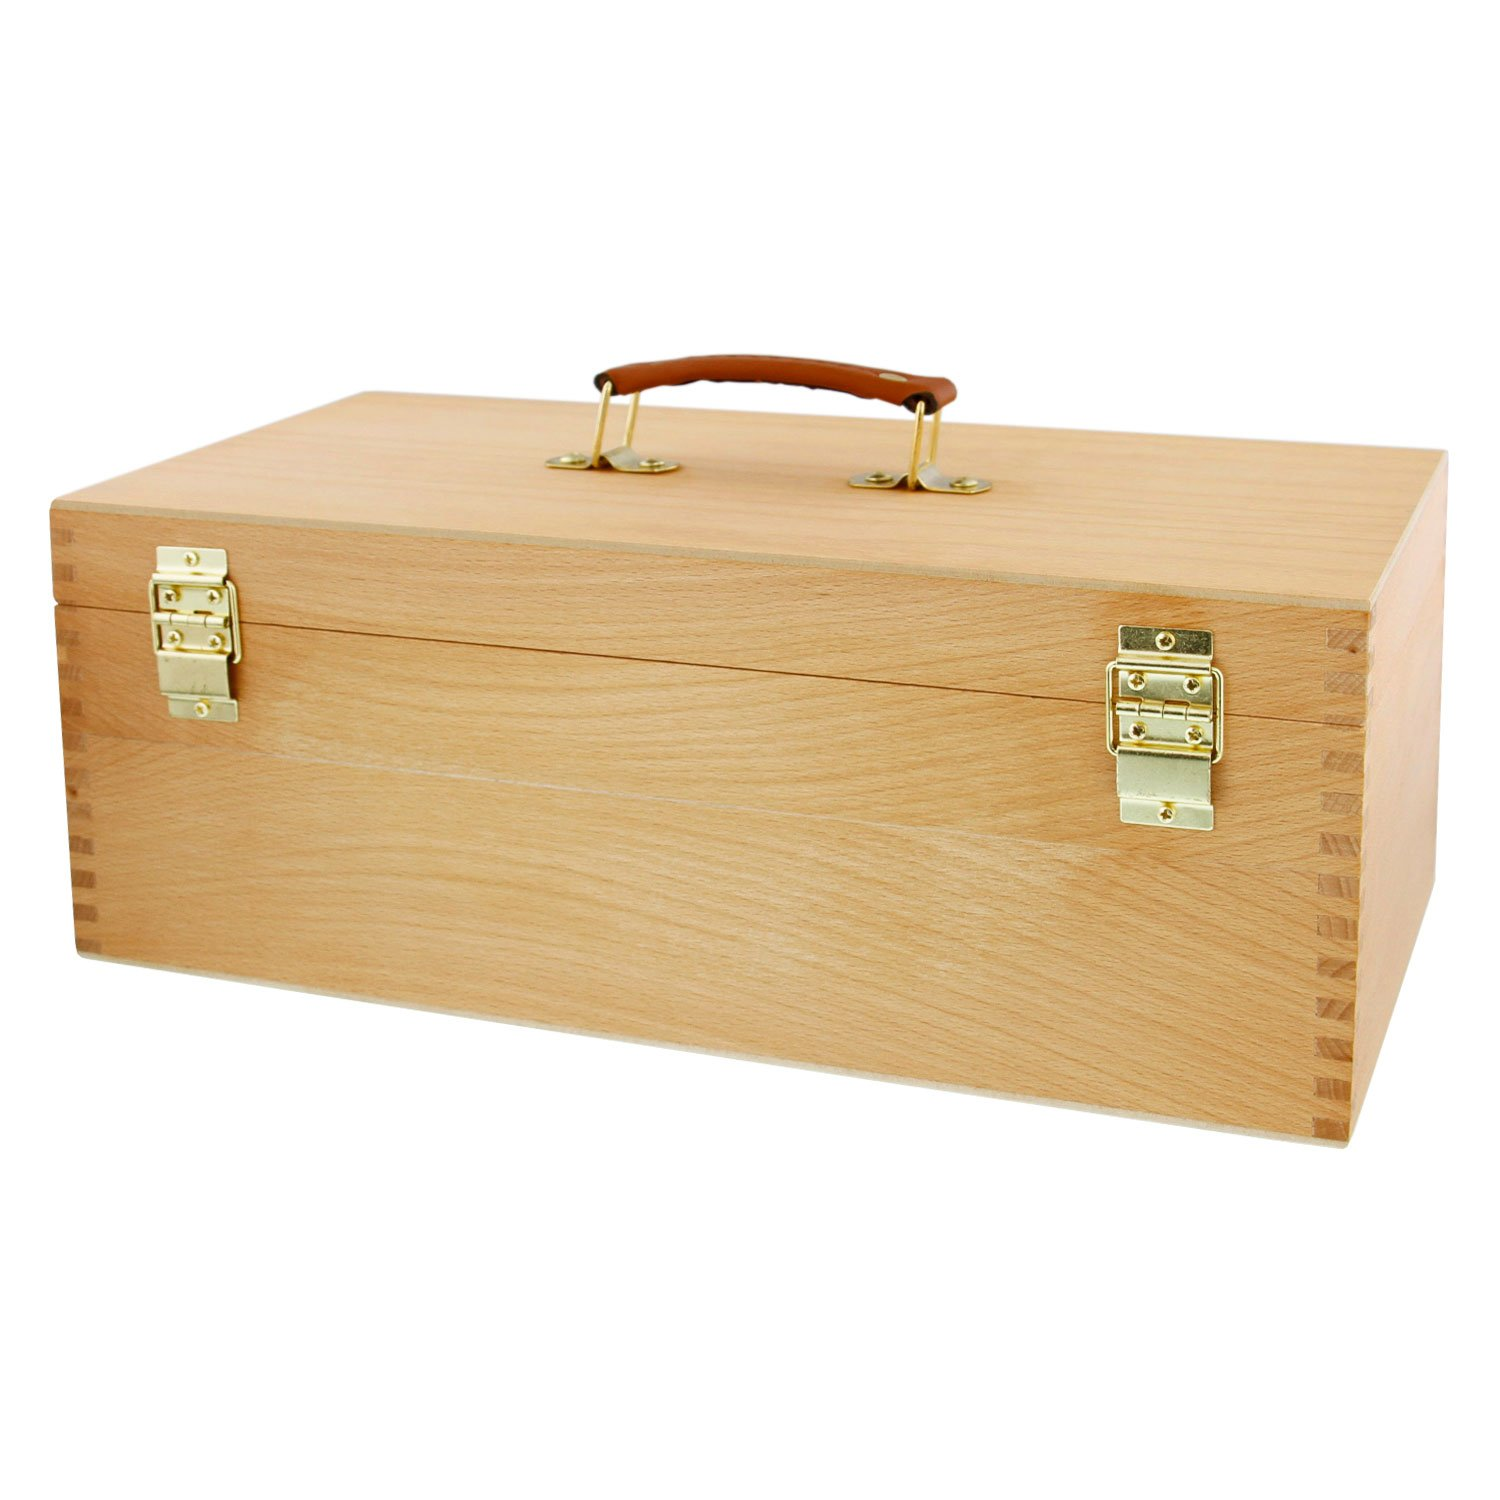 Large Tool Box-Tool Chest Marker Storage Box with Drawer Artist Wood Pastel s Pen